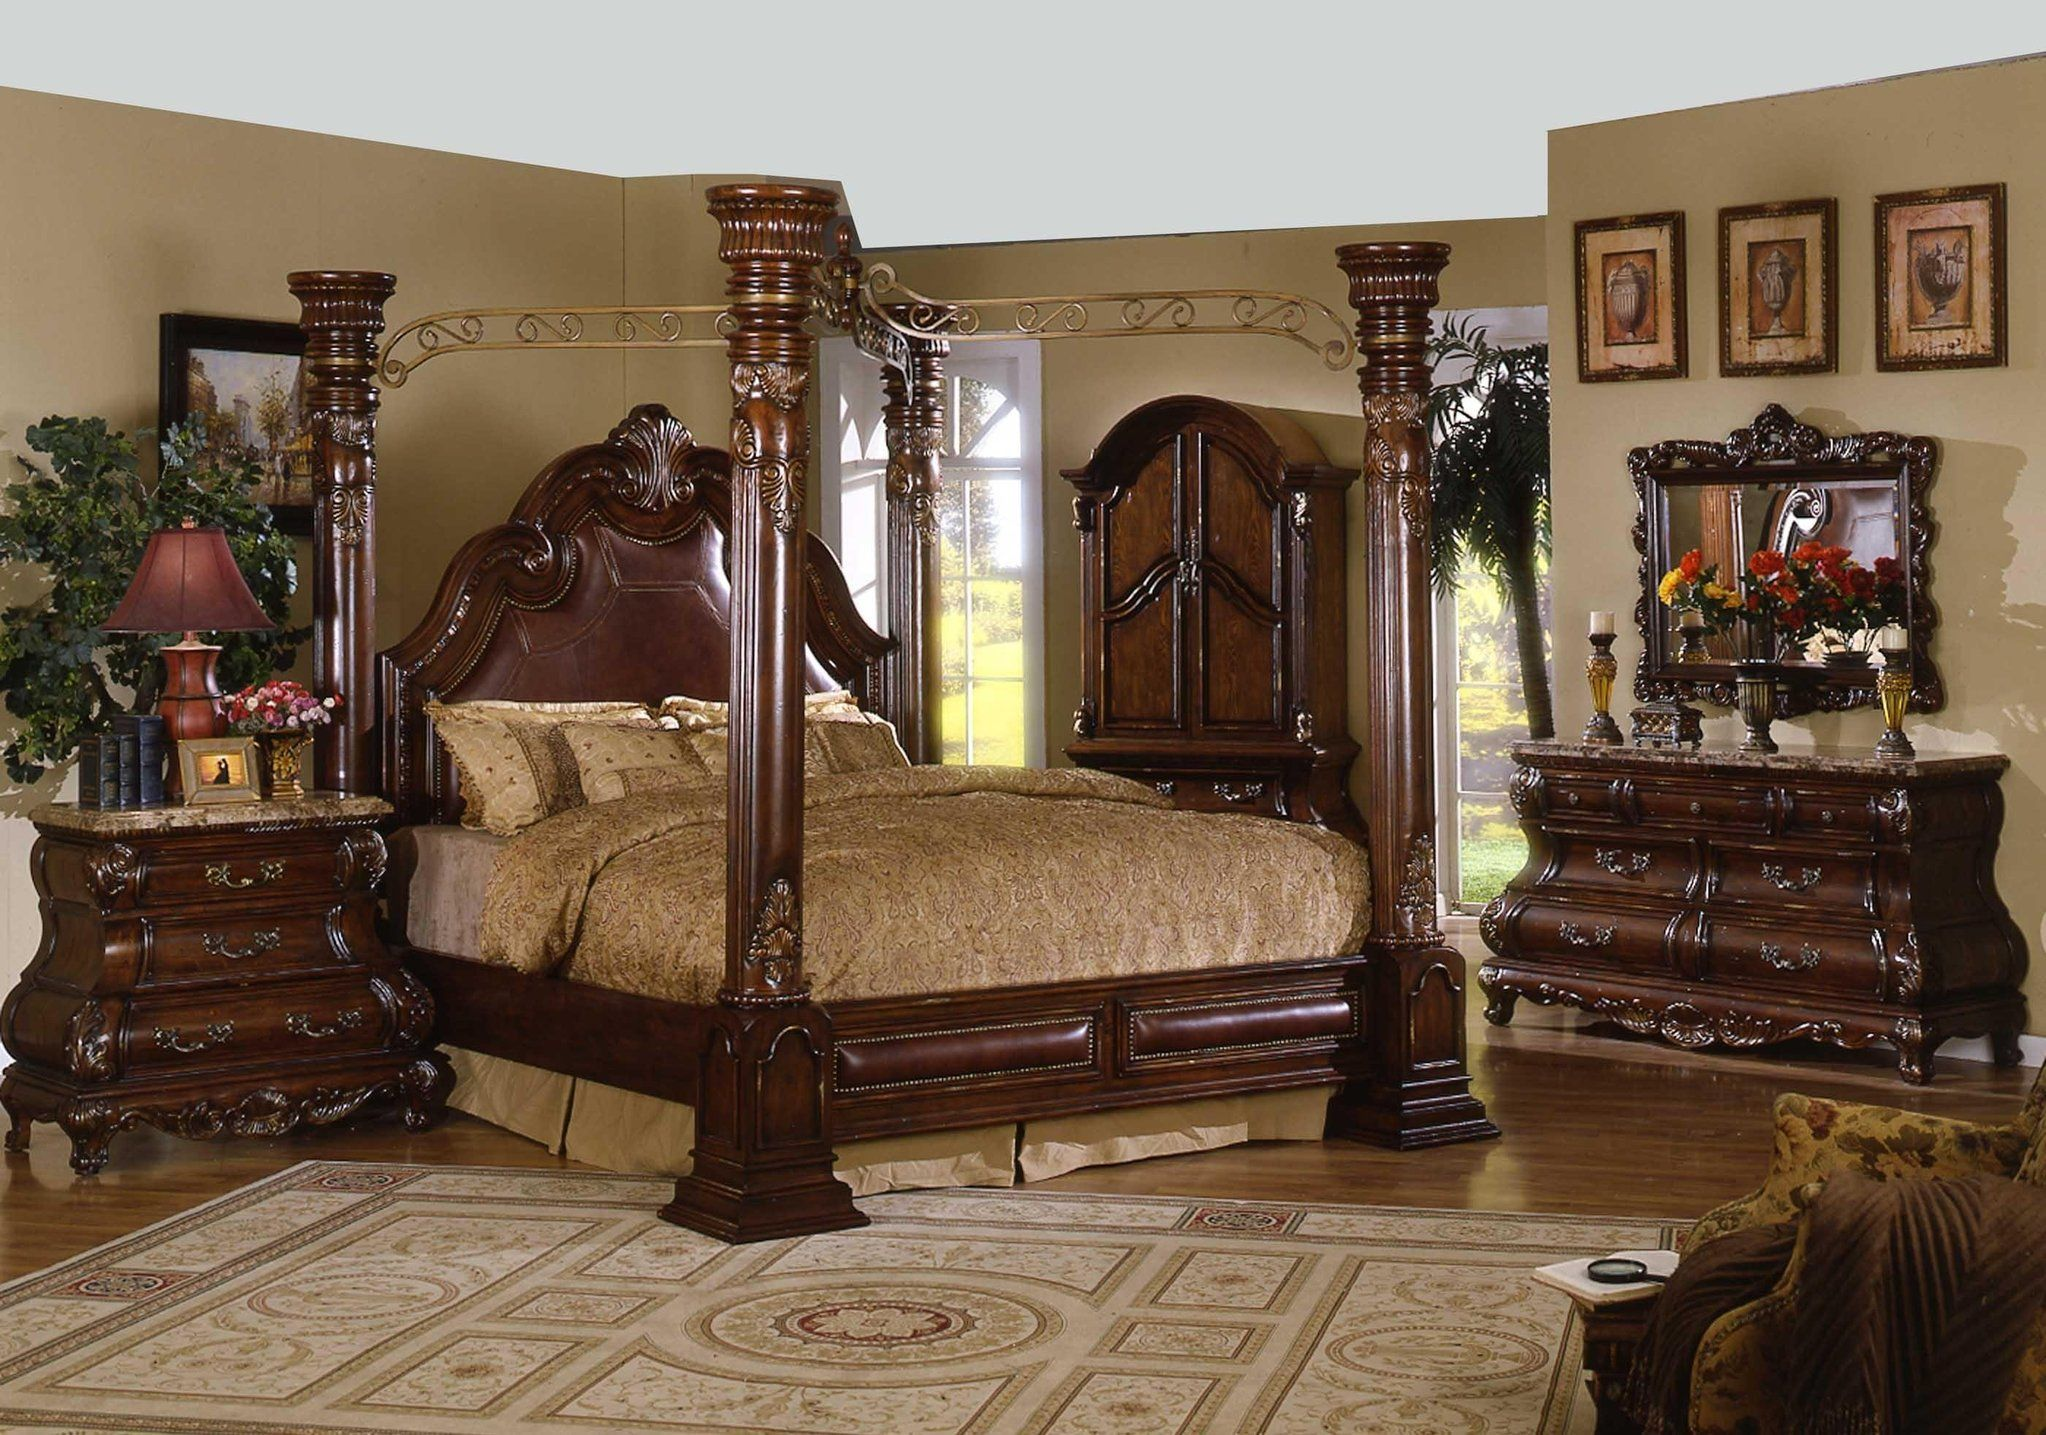 Magnificent Cal King Bedroom Sets With Top Quality Wooden Bed In Bedroom And Impressive High